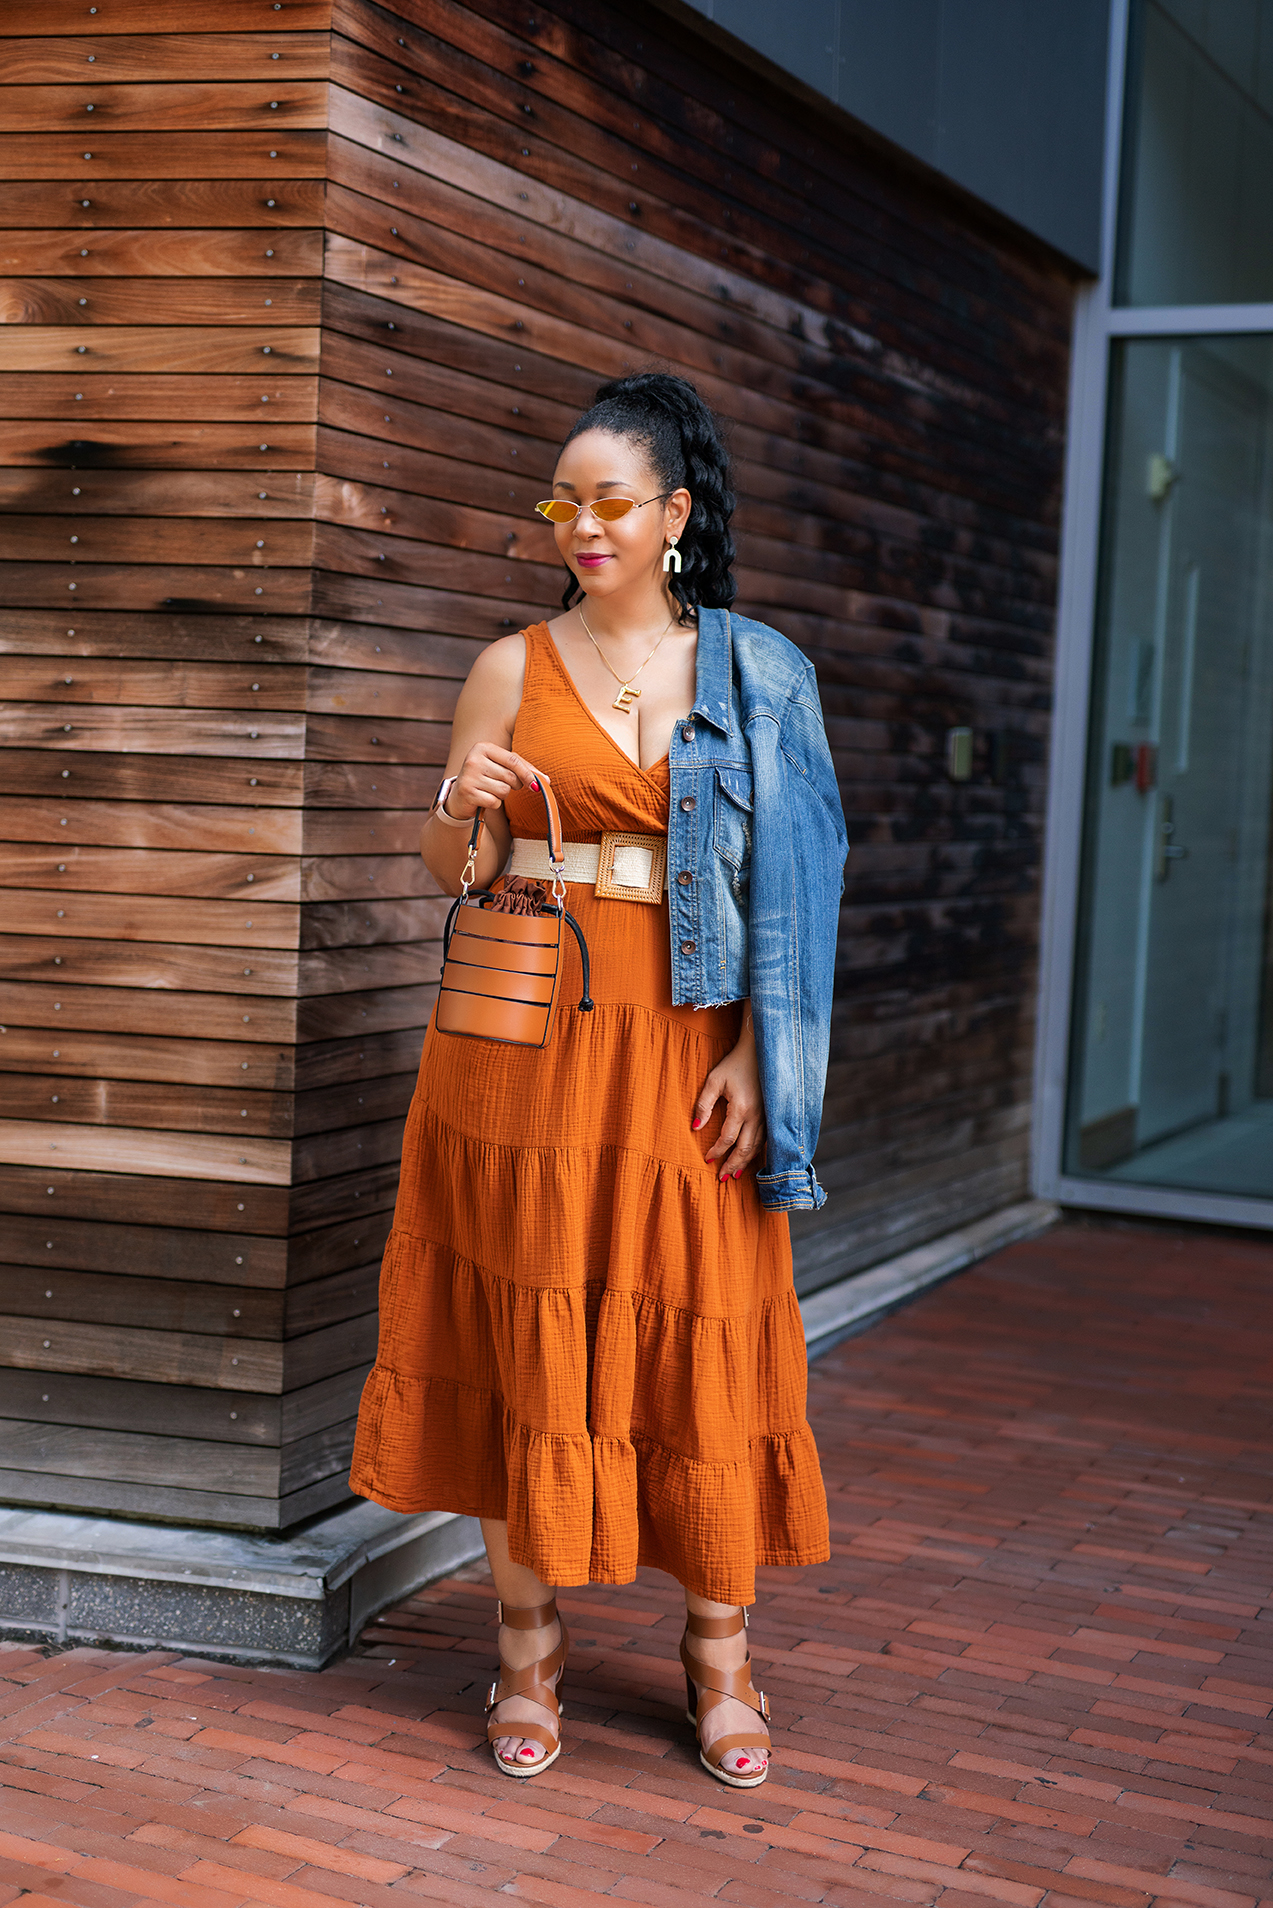 Pumpkin Spice and Everything Nice: What I'm Wearing: Women's Cateye Sunglasses - Wild Fable™ Gold, Women's Sleeveless Tiered Dress - Universal Thread™, Eva Mendes Collection Cutout Bucket Bag, Essex Lane Finnet Wedge Sandal